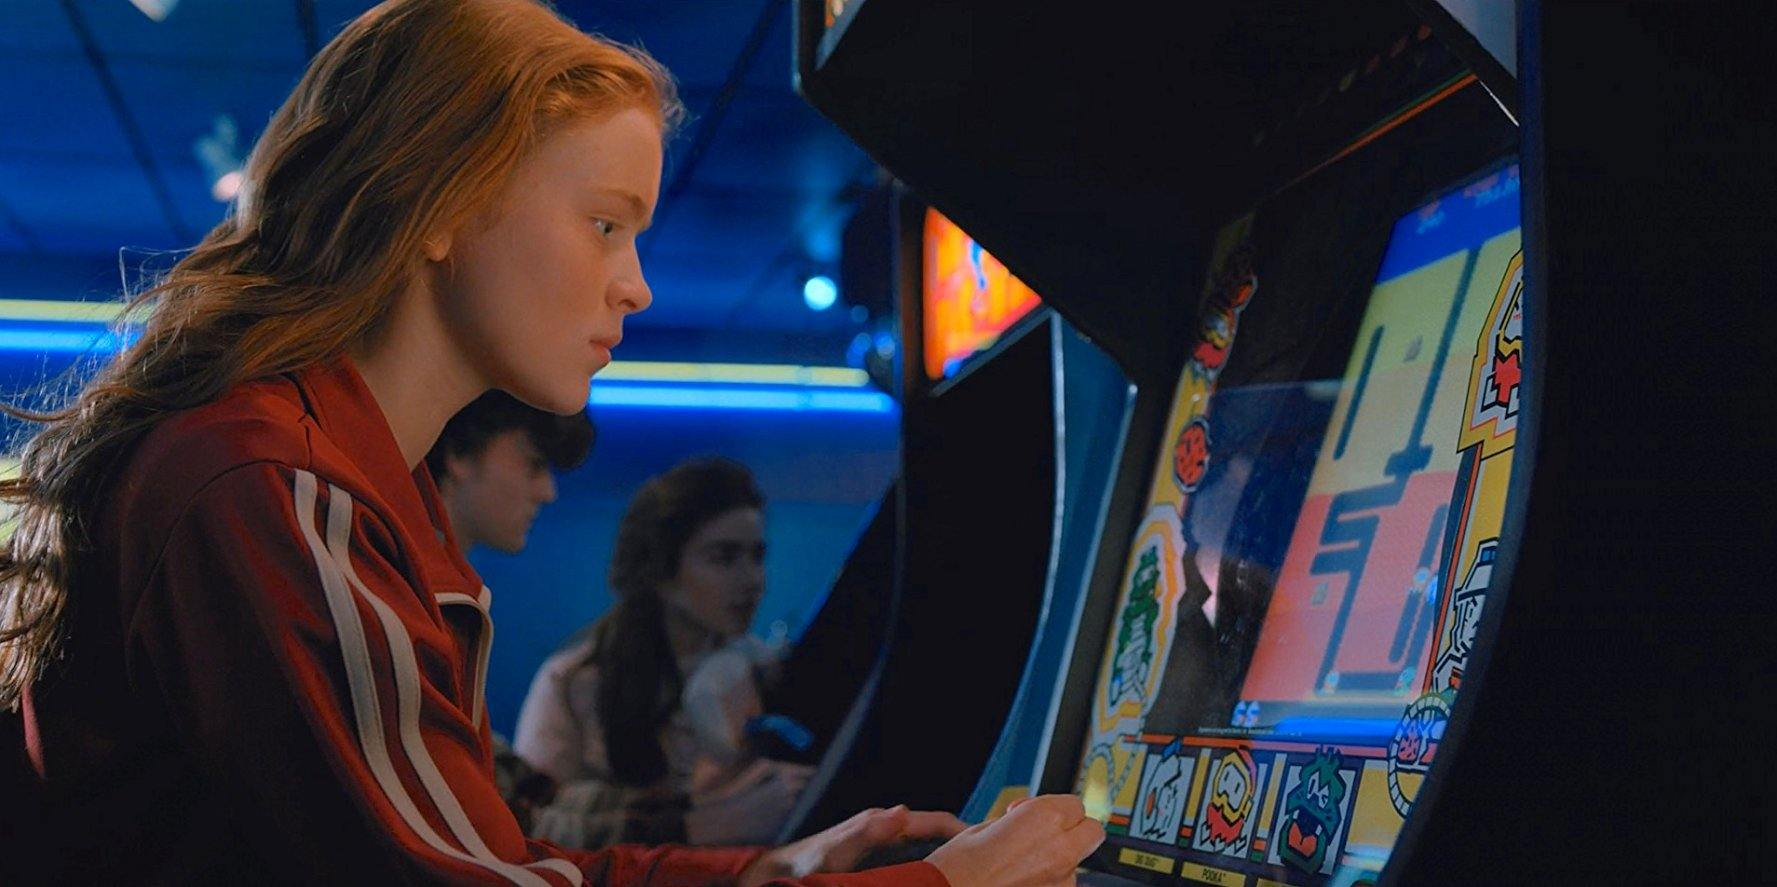 Sadie Sink as Max playing an old-fashioned video game machine in Stranger Things 2